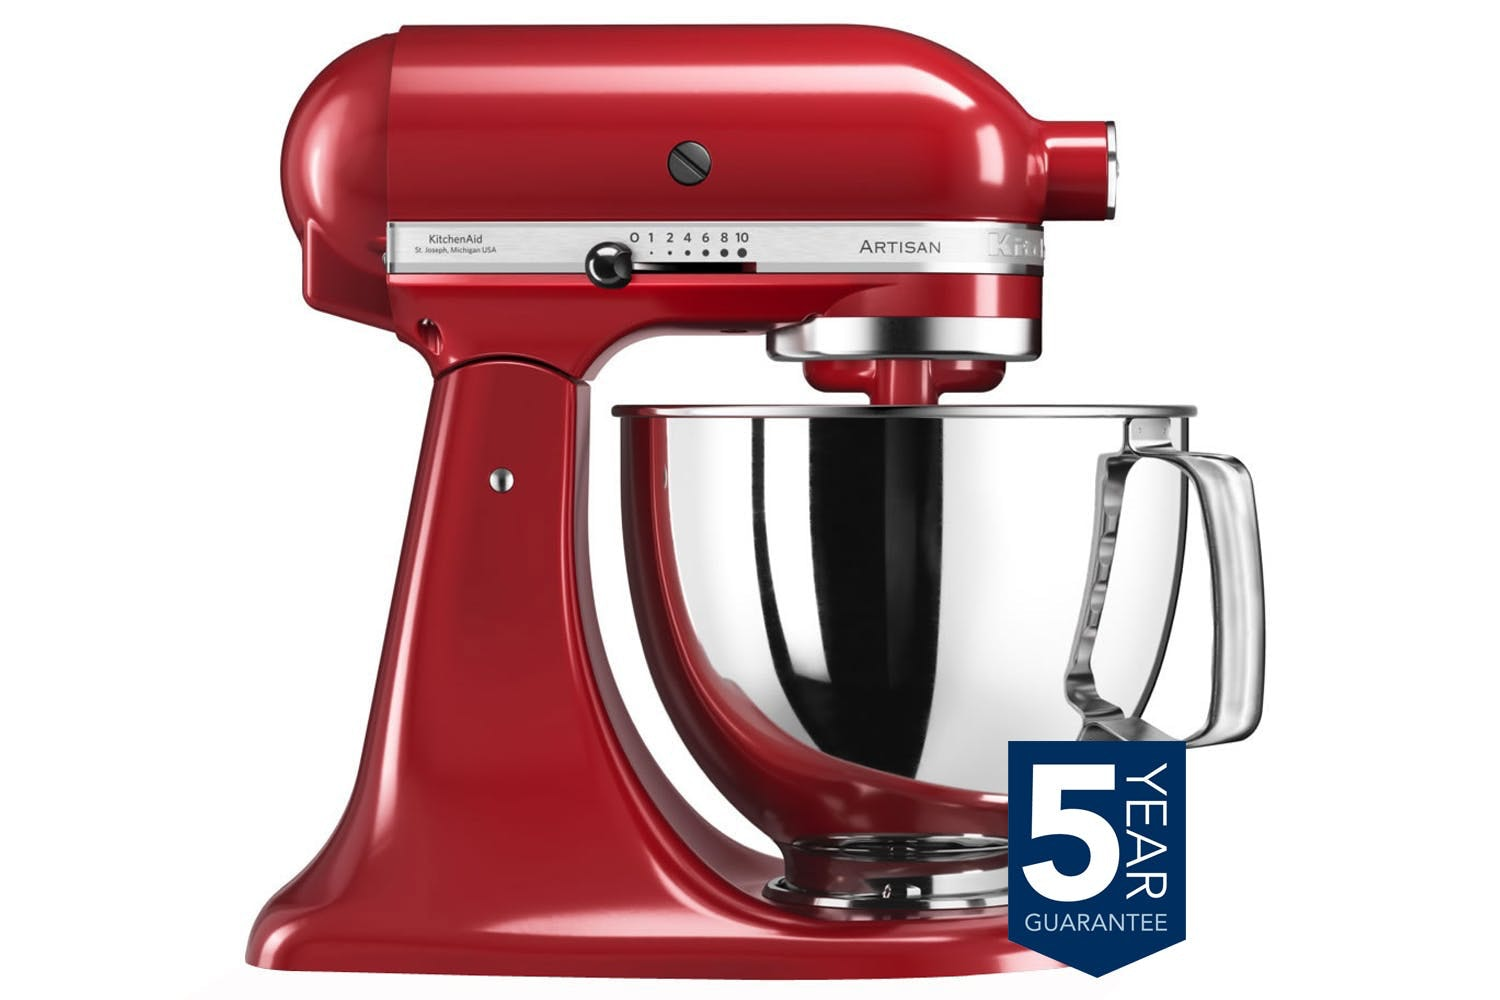 615 Kitchenaid Tv Offer - Best Home Interior • on internet offers, mattress offers, hp laptop offers,